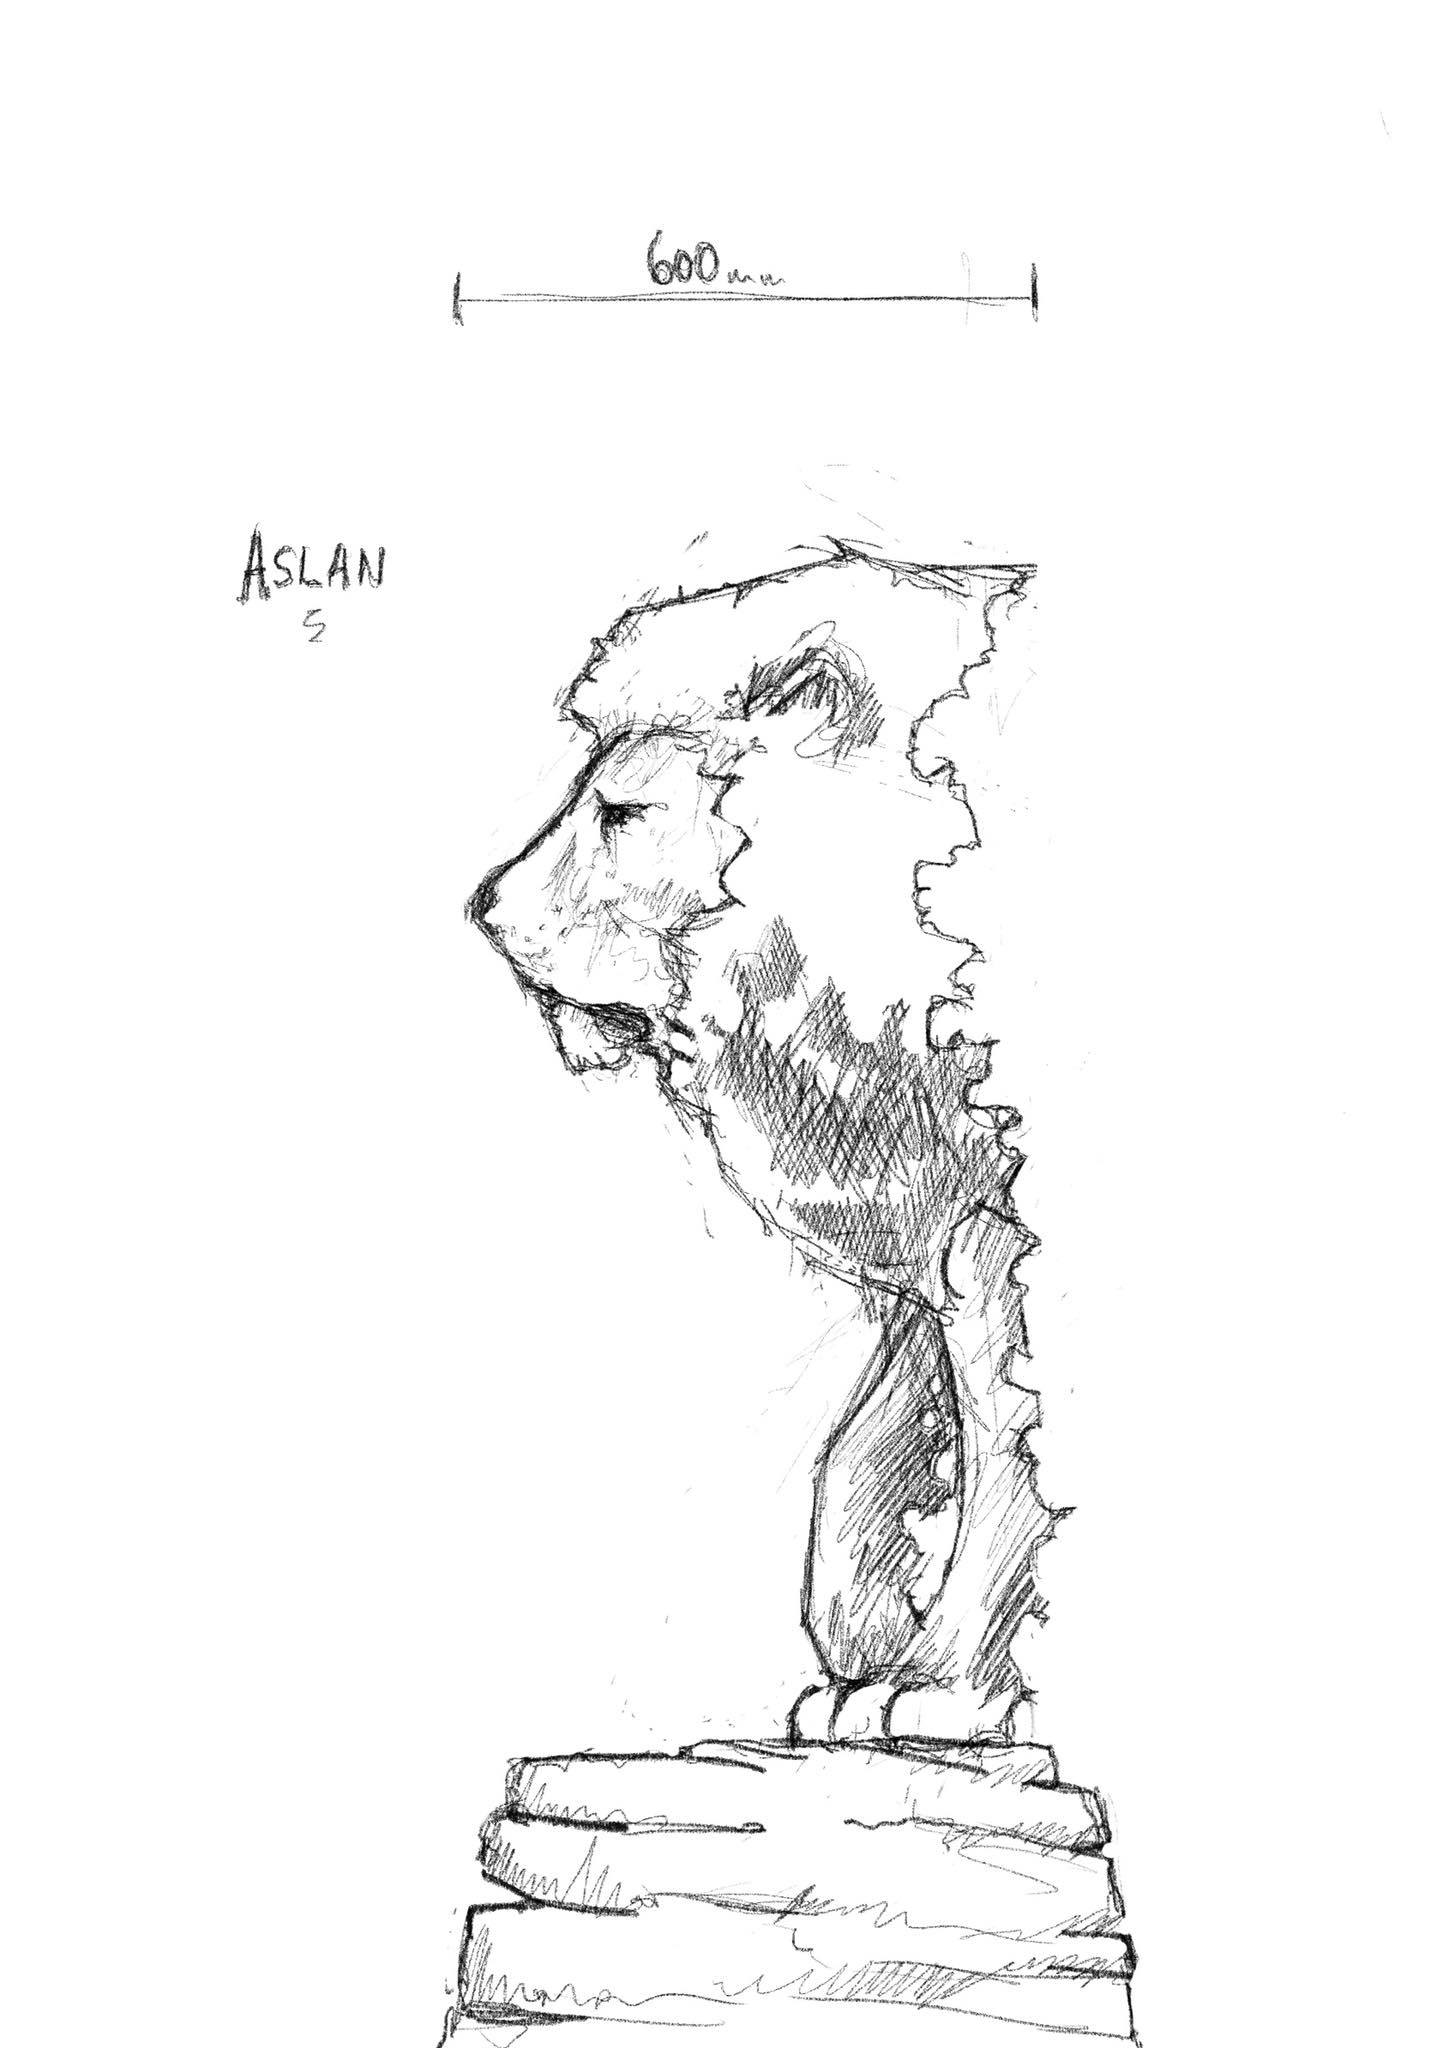 commissioning the right sculpture: a sketch of a lion by simon o'rourke. It is the head and front legs on a lion standing on a plinth. the lion is suggested to be Aslan from C S Lews' Narnia series.